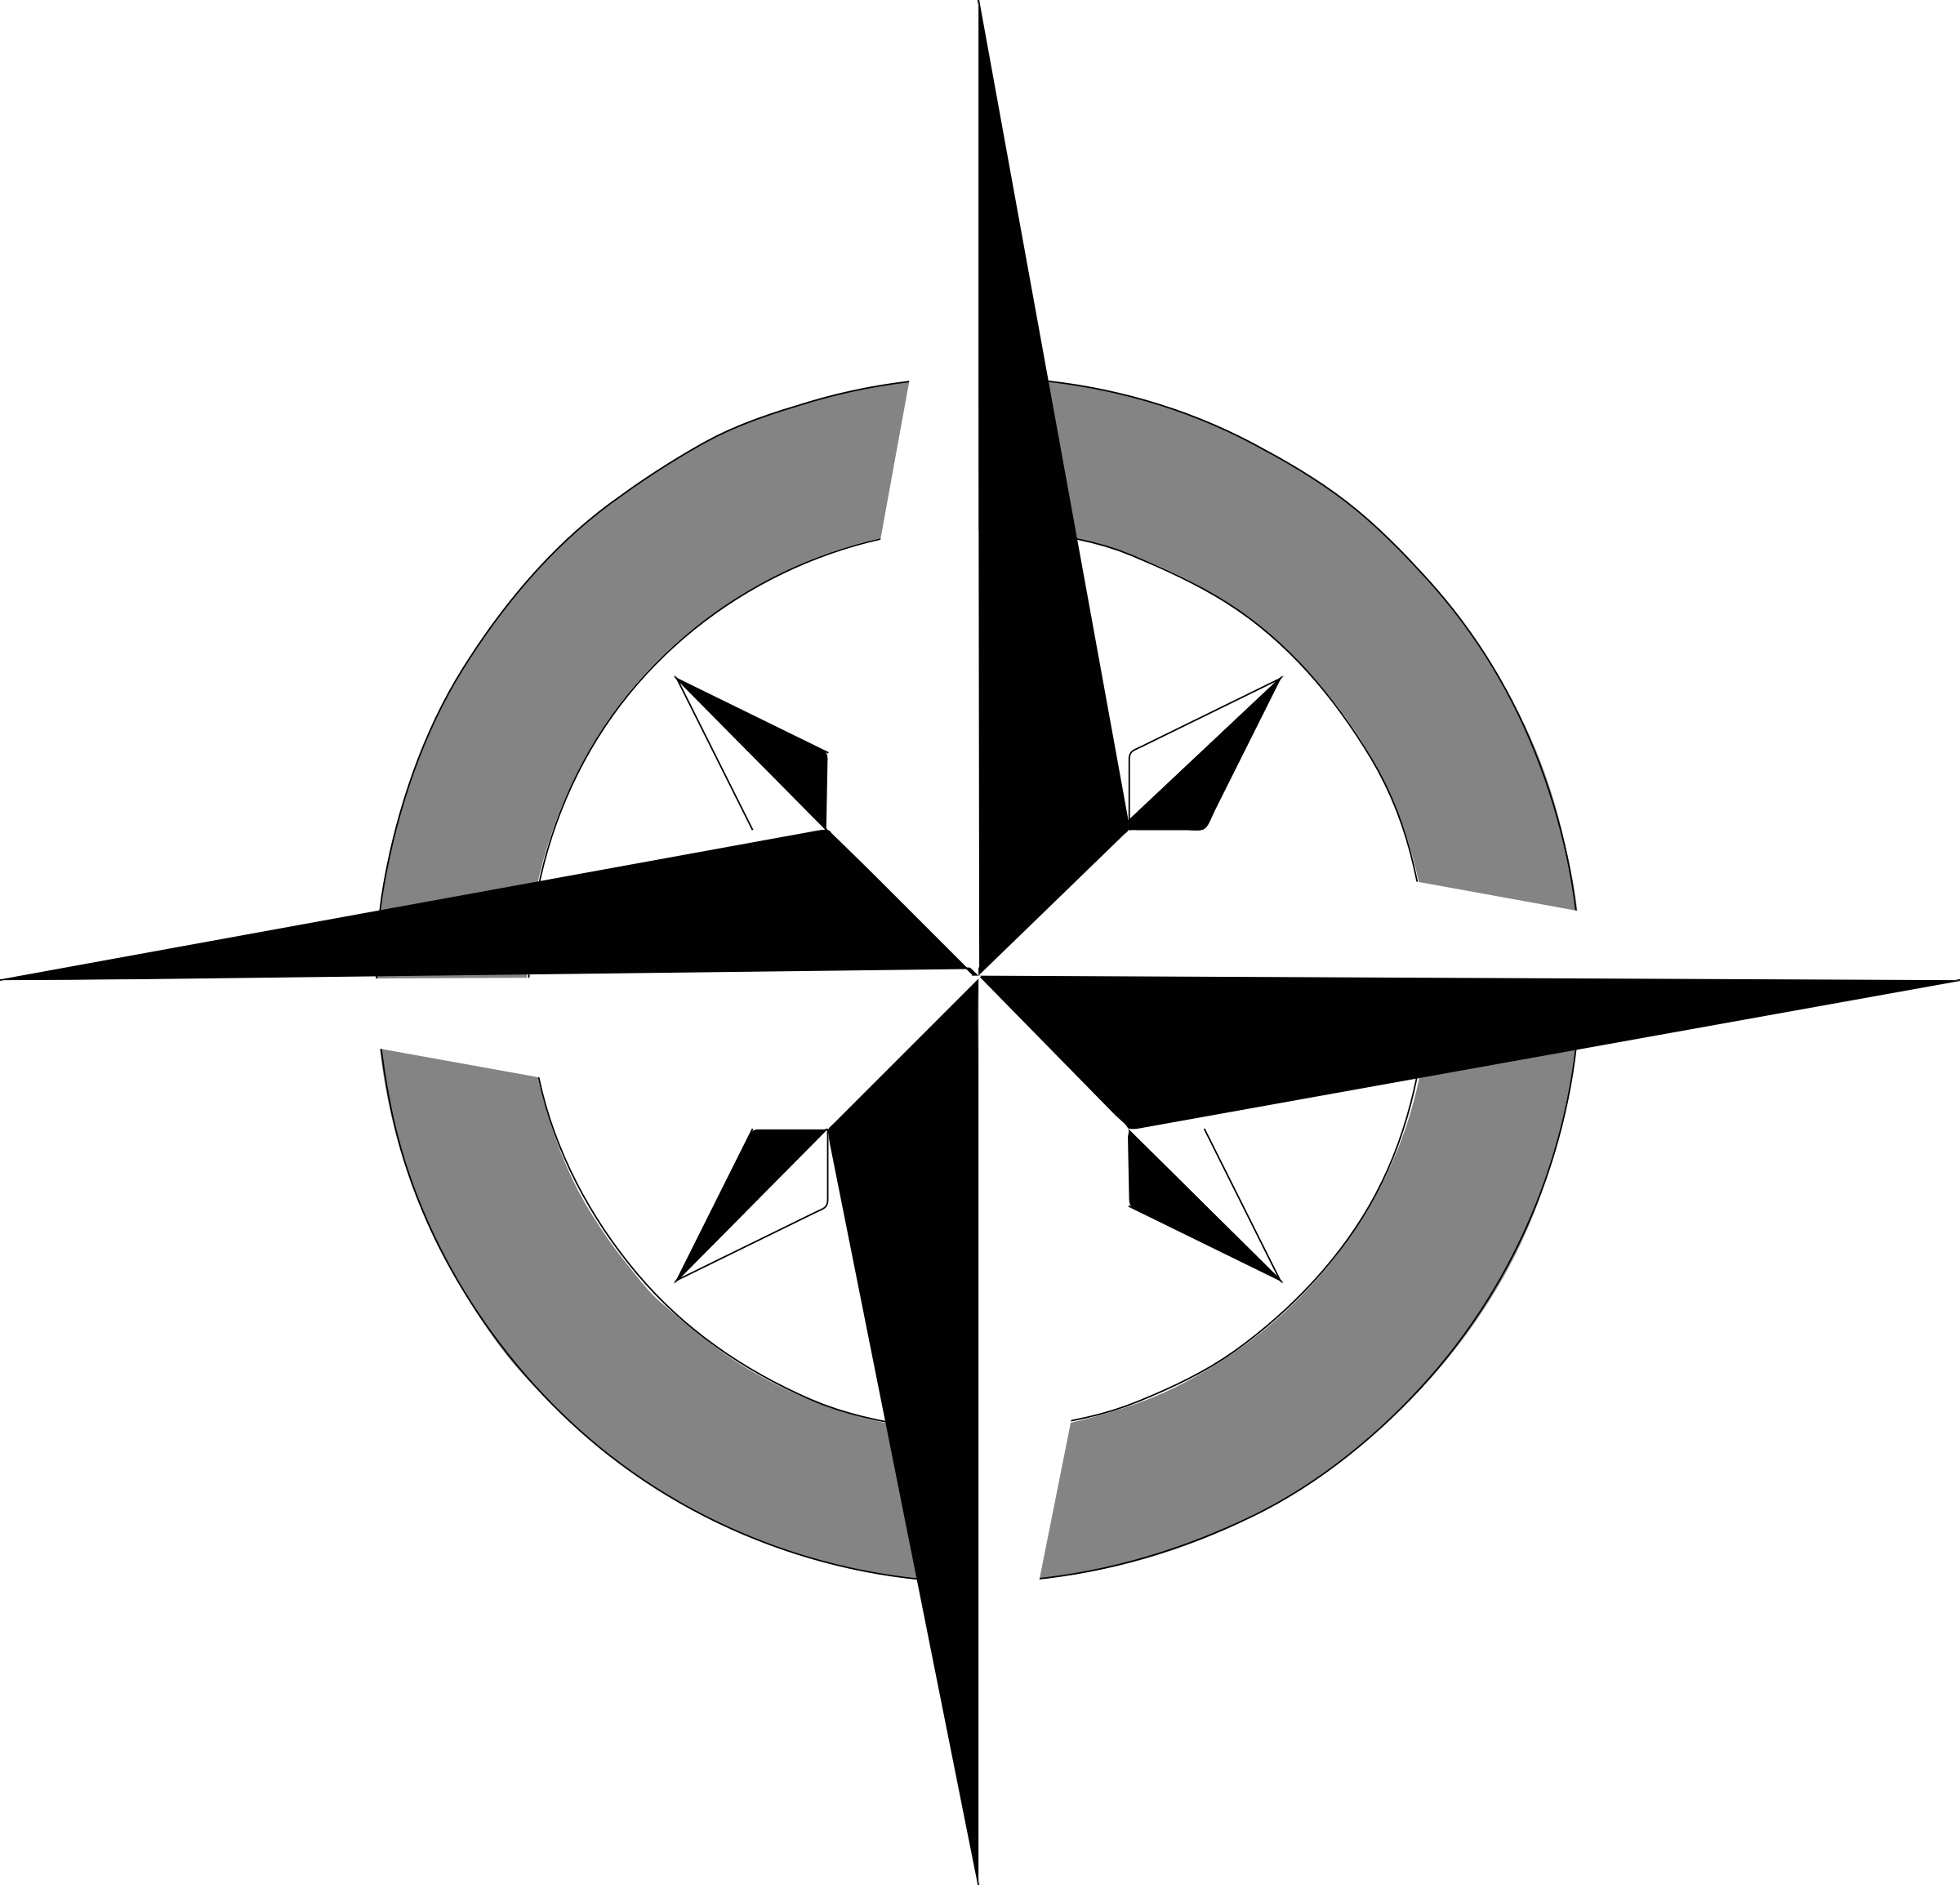 Compass clipart social science. Rose icons png free